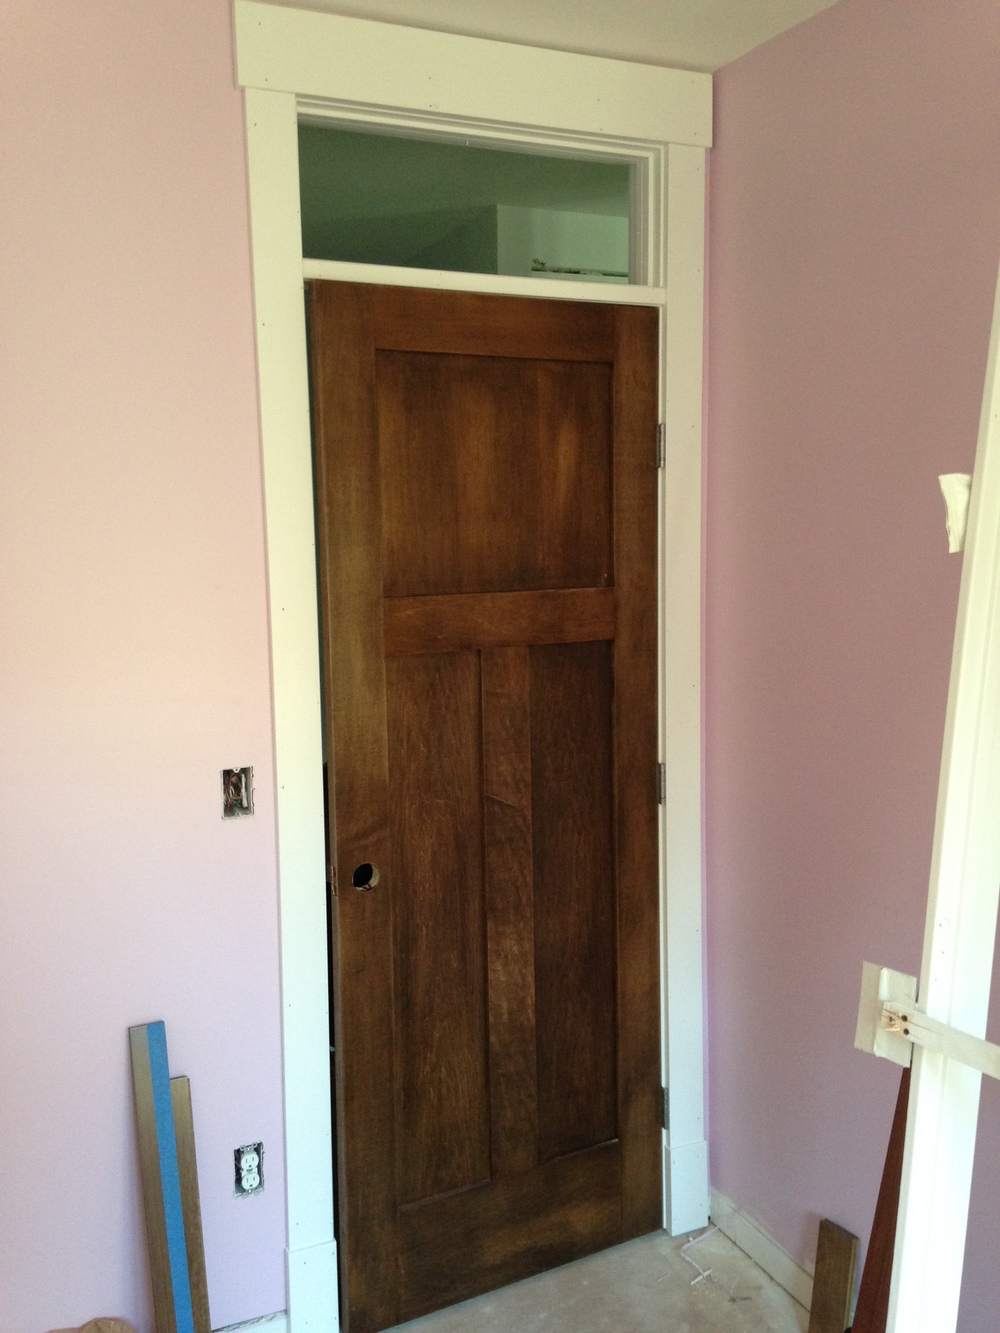 The nursery with the new door and trim!